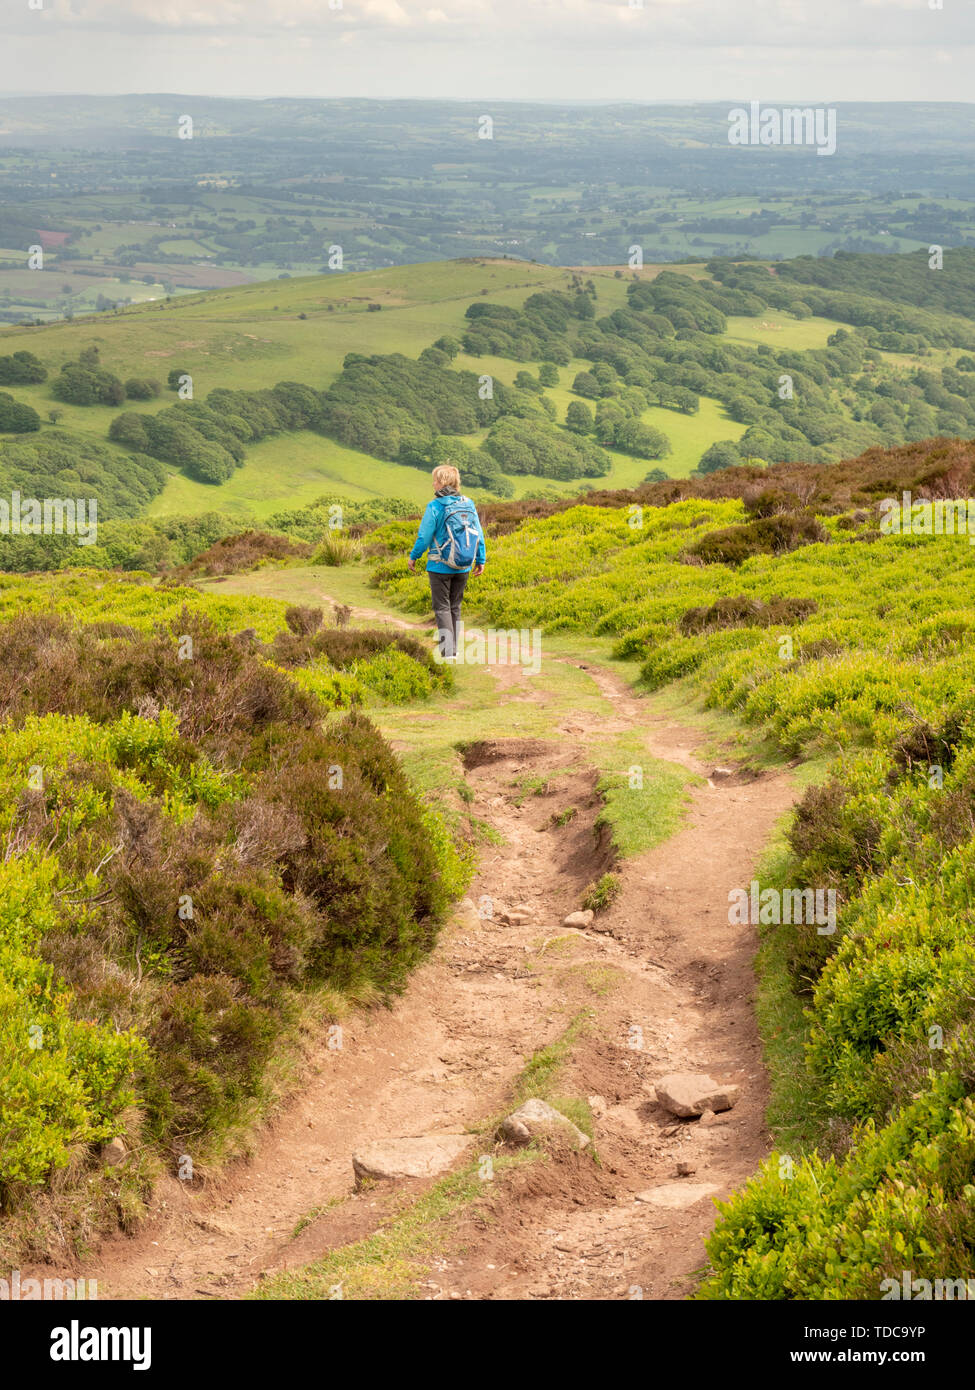 A woman walking in the hills near Abergavenny and Sugar Loaf Mountain in the brecon Beacons Wales UK - Stock Image